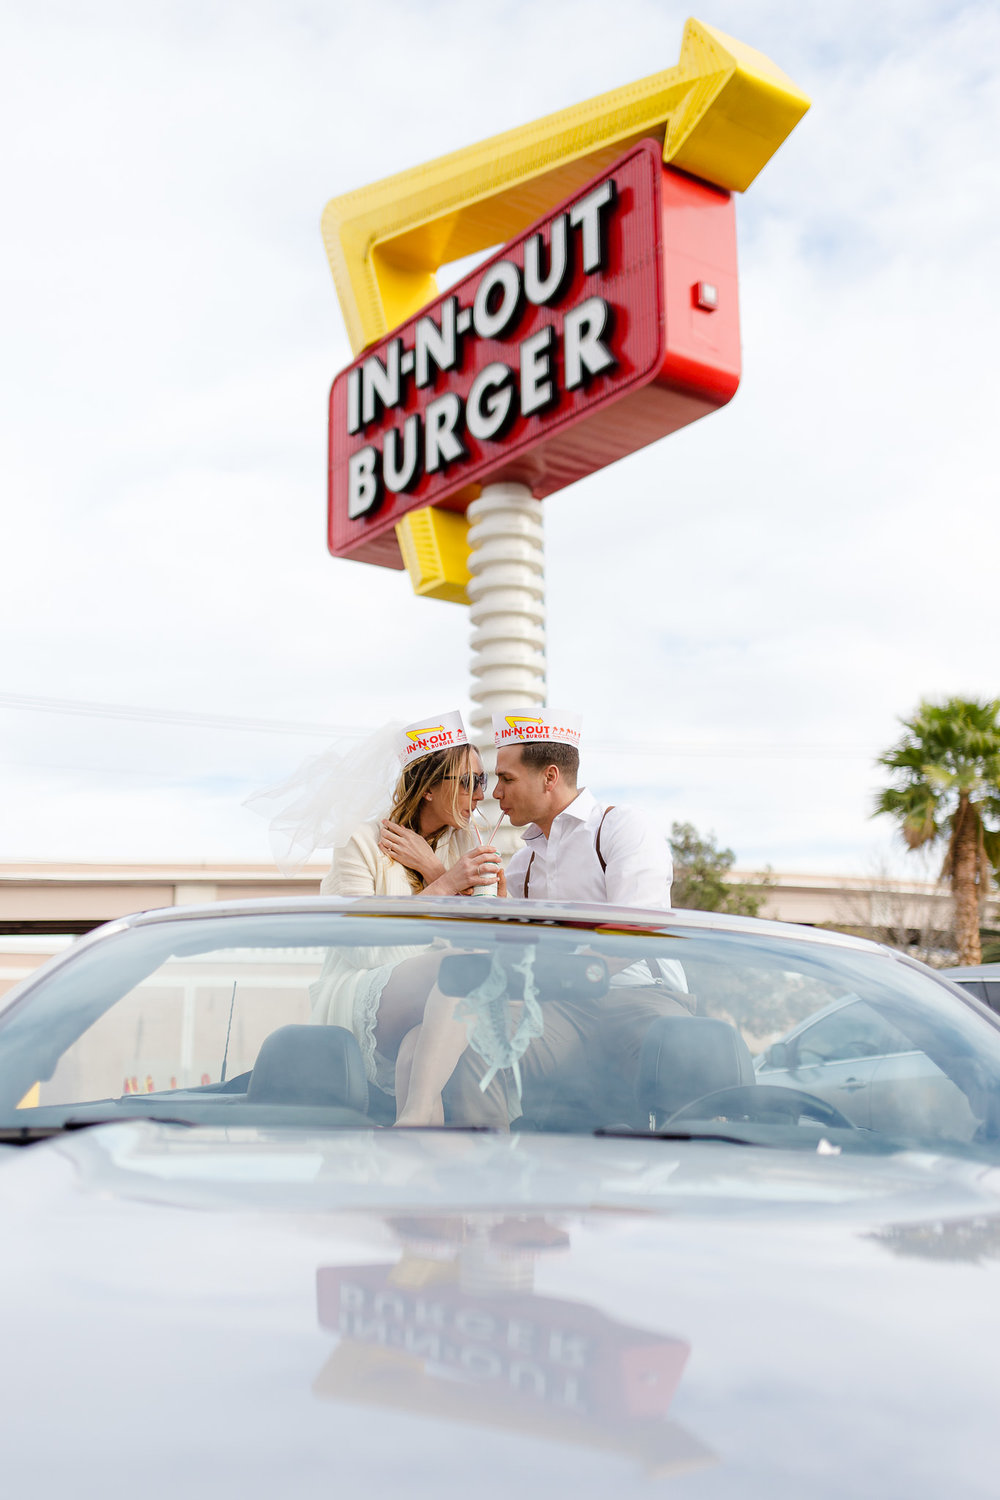 Bride and groom share a wedding shake from In-N-Out during their Las Vegas Elopement